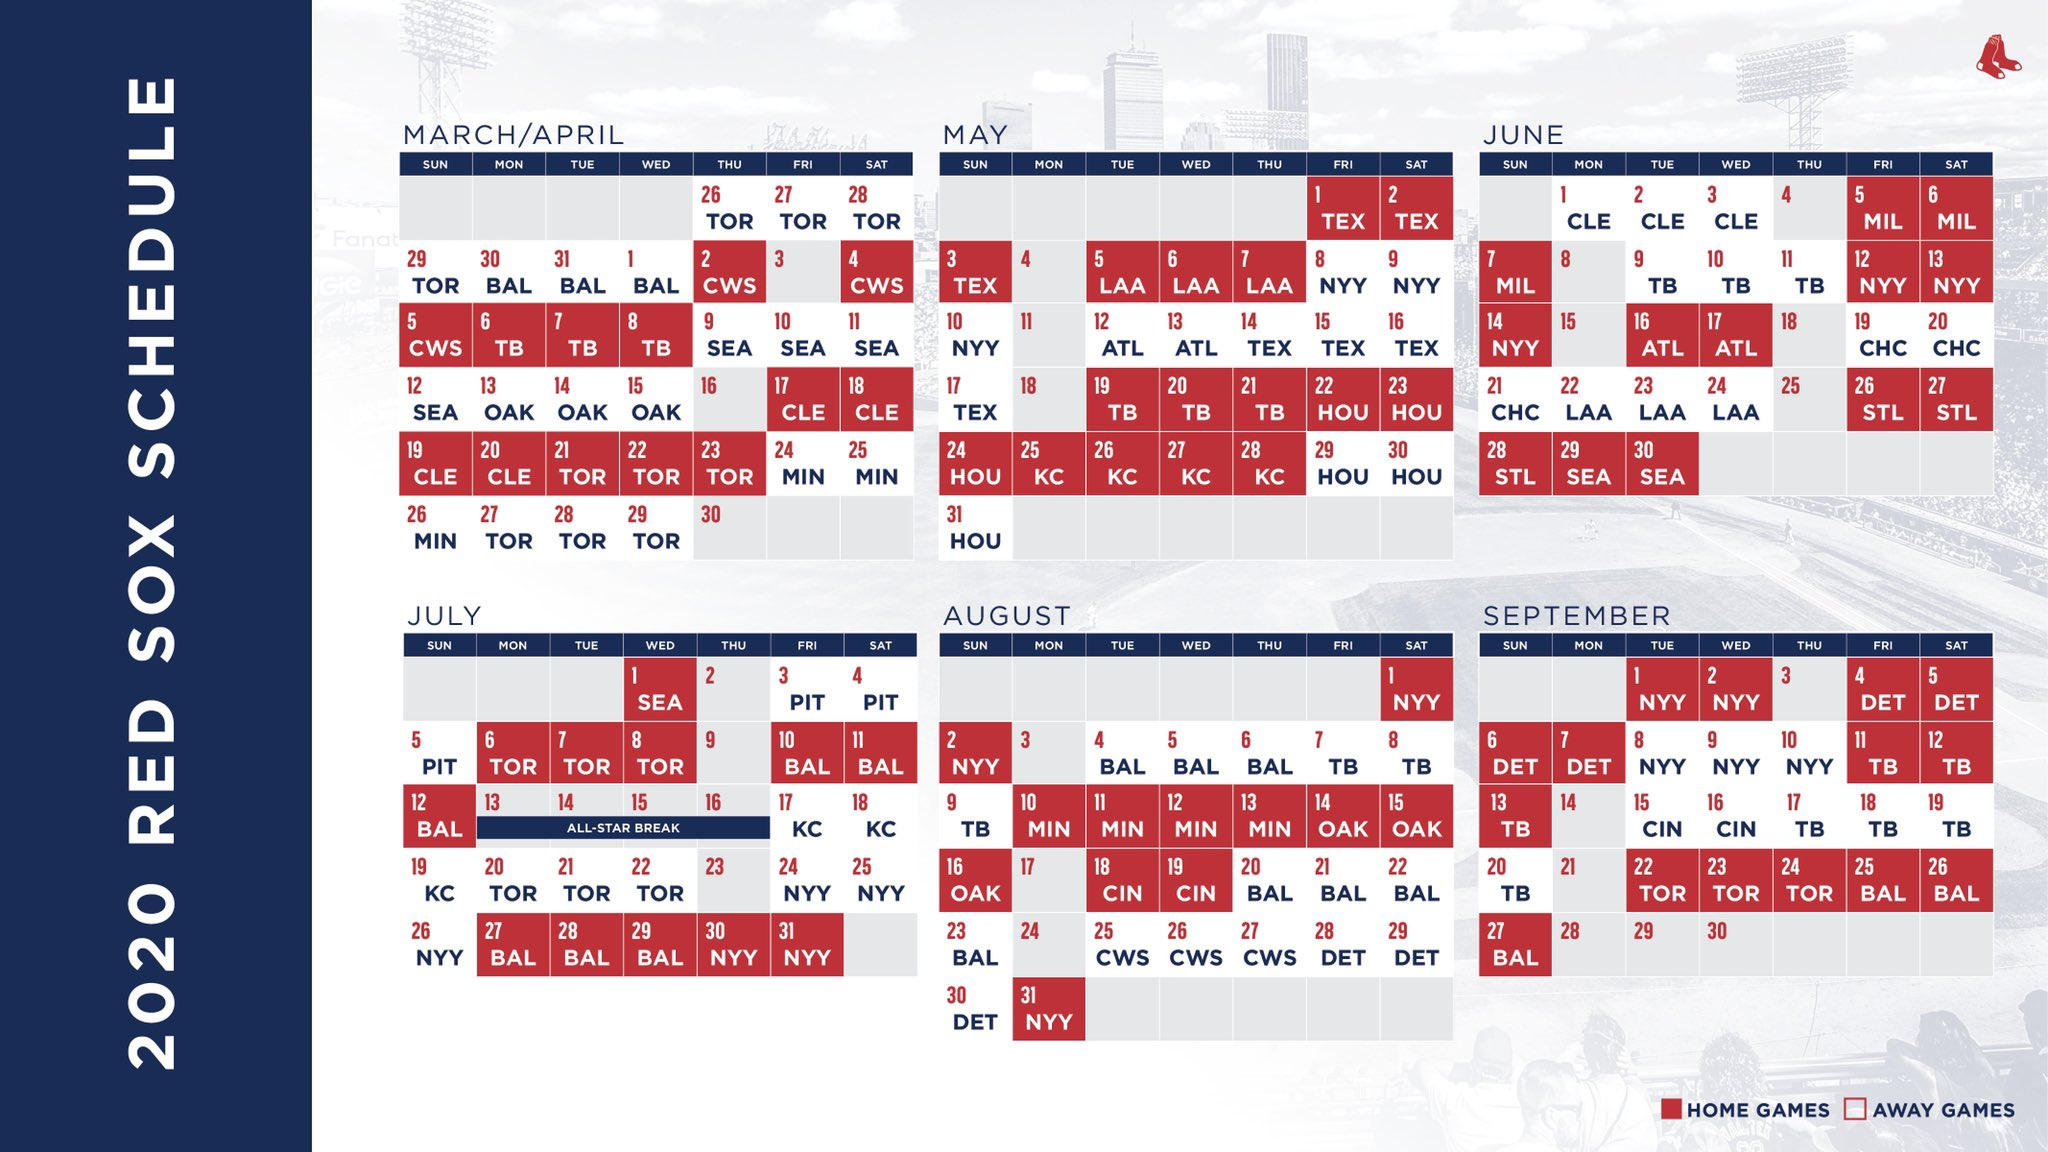 Cubs Schedule 2020 Printable.Here S The 2020 Red Sox Schedule Boston Com